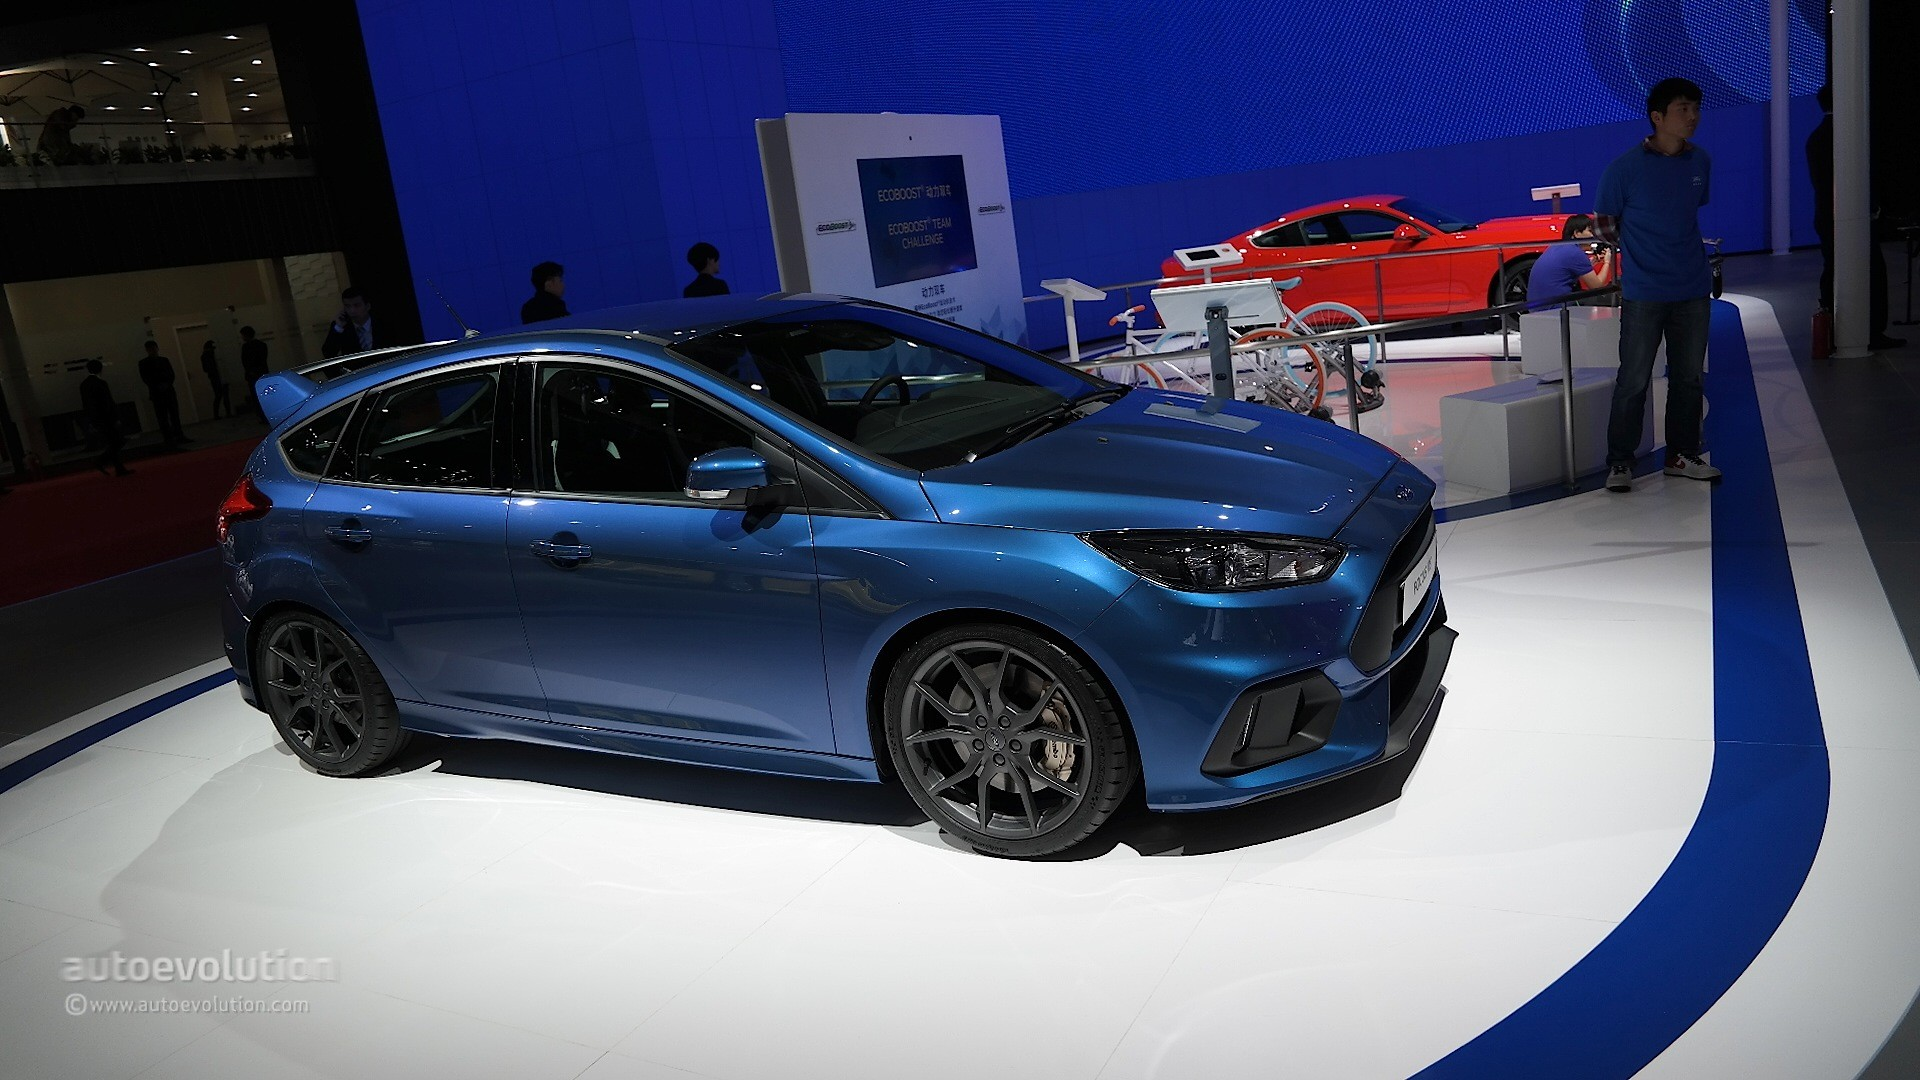 Ford Focus Rs Arriving In China Via The Shanghai Auto Show Live Photos on Volvo 2 5 Engine